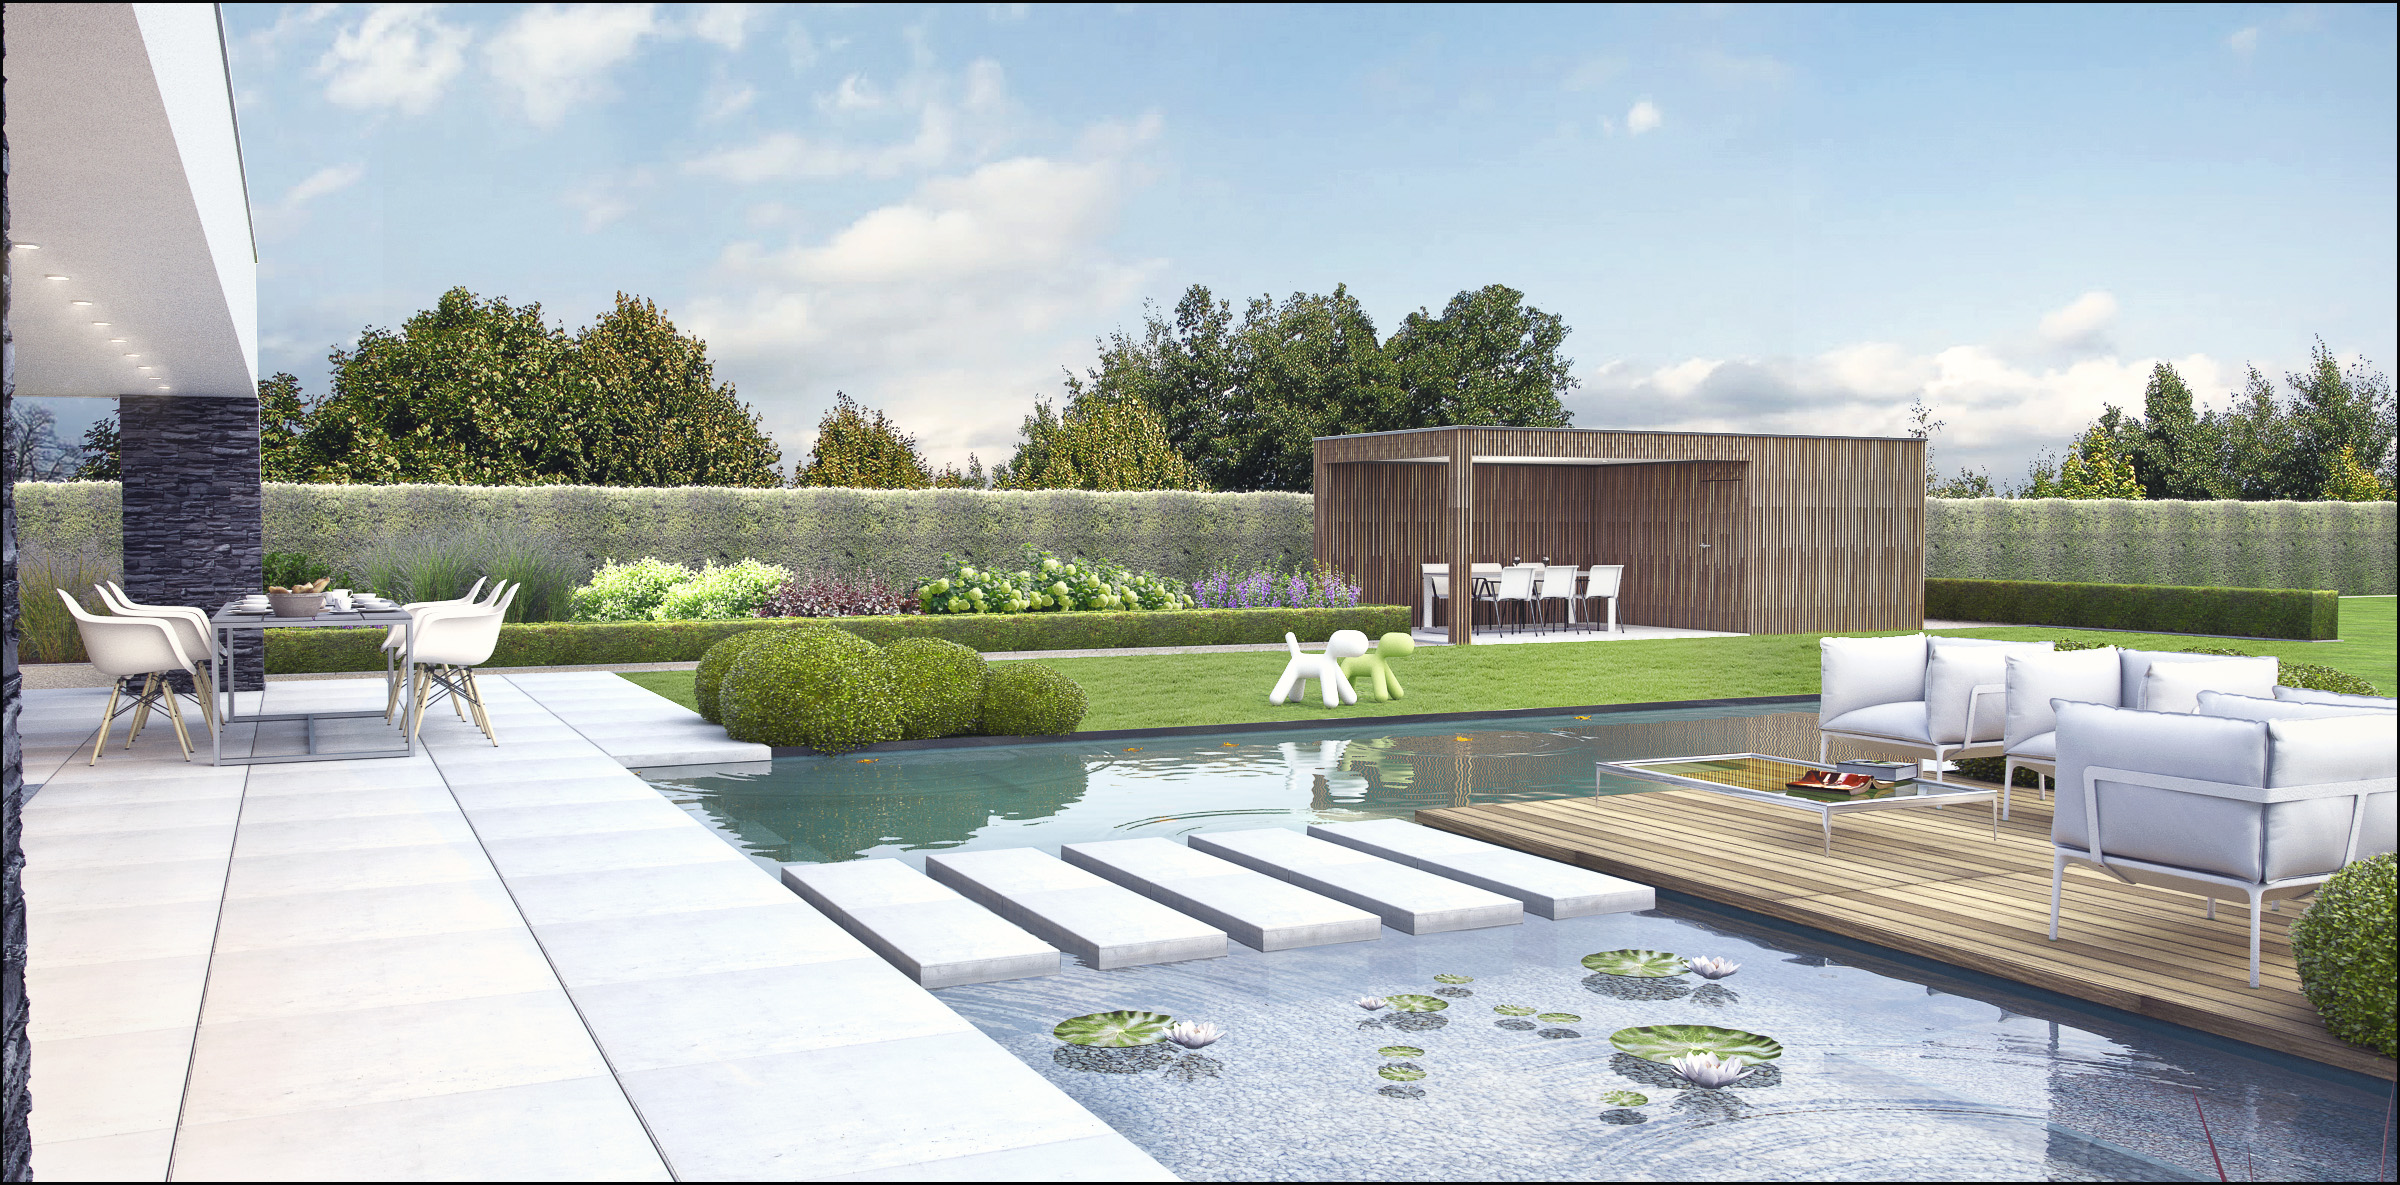 1000 images about nl gardens on pinterest for Moderne waterpartijen tuin